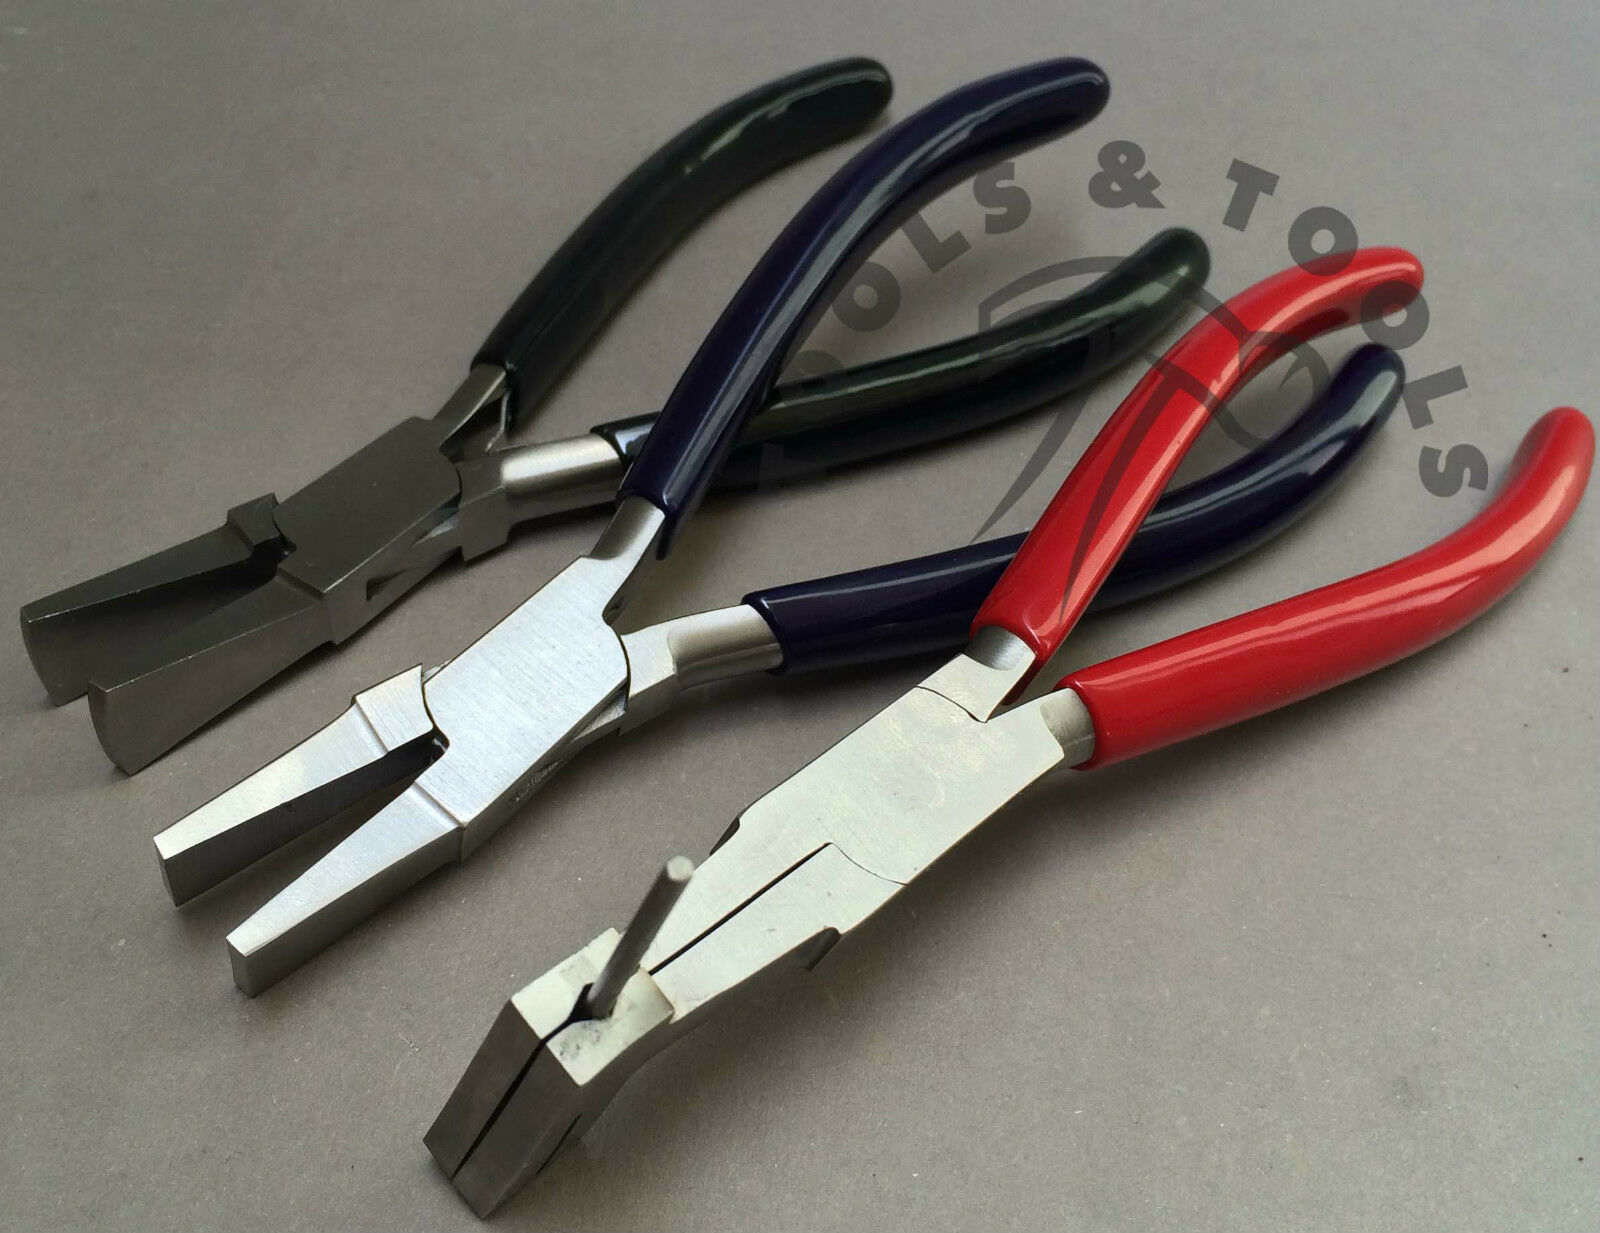 3 PCS PLIERS SET JUMP RING COIL CUTTING DUCK BILLED WIDE JAW JEWELRY Wiring Pliers on